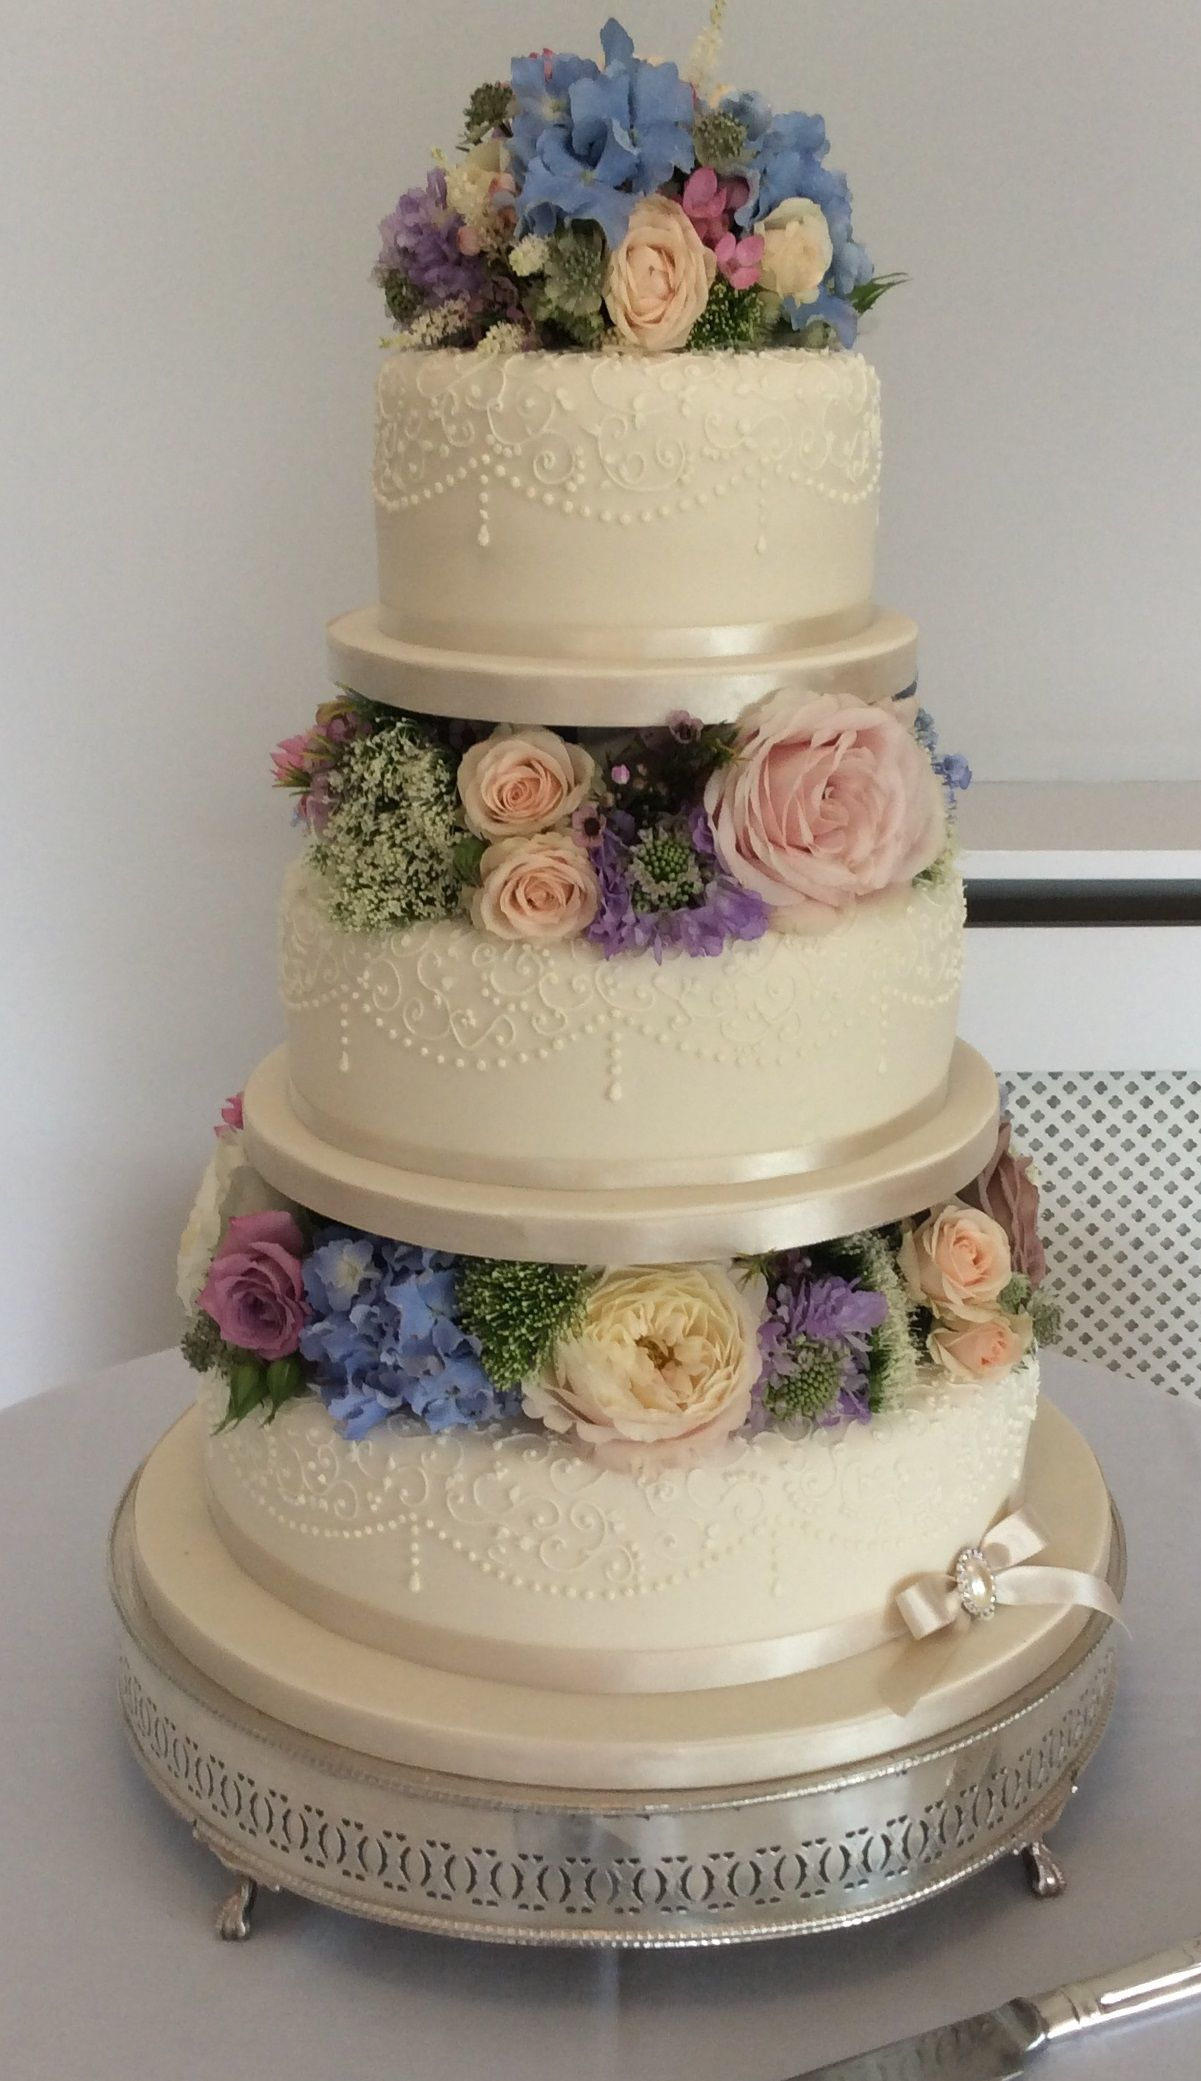 Gabi a favourite design of ours softly finished tiers decorated